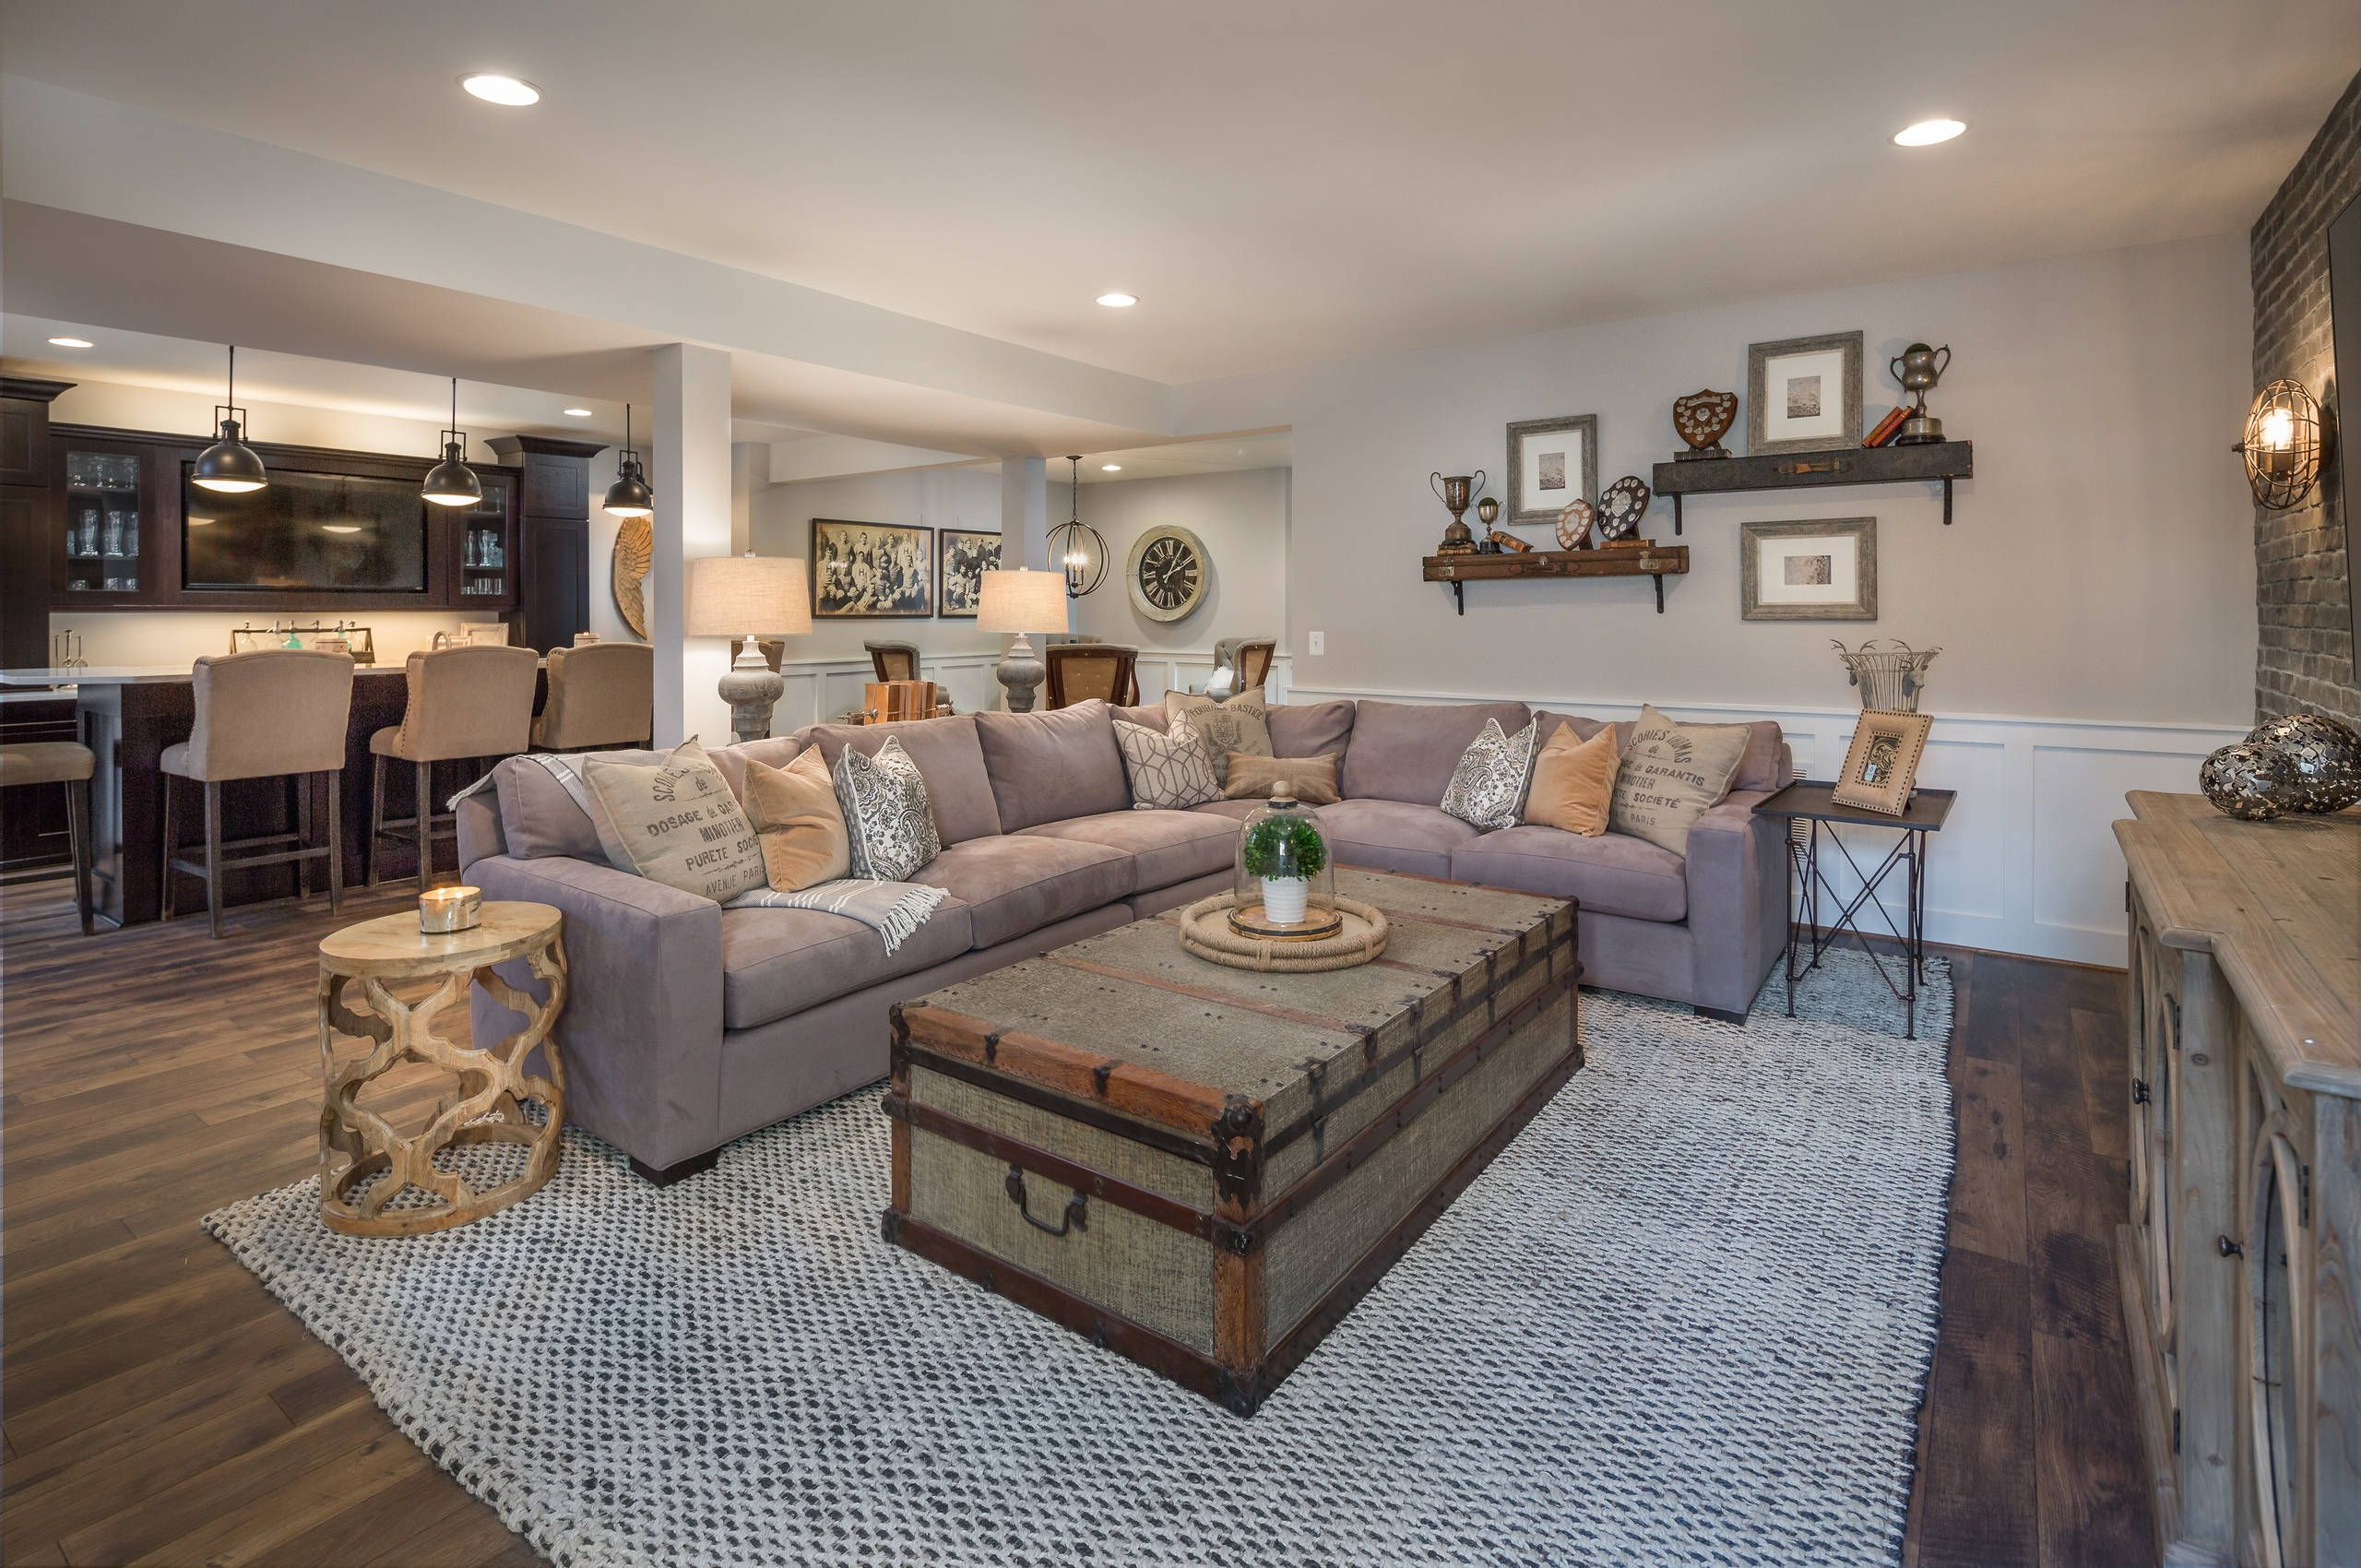 16 charmingly sophisticated design ideas for a basement on smart man cave basement ideas id=70197